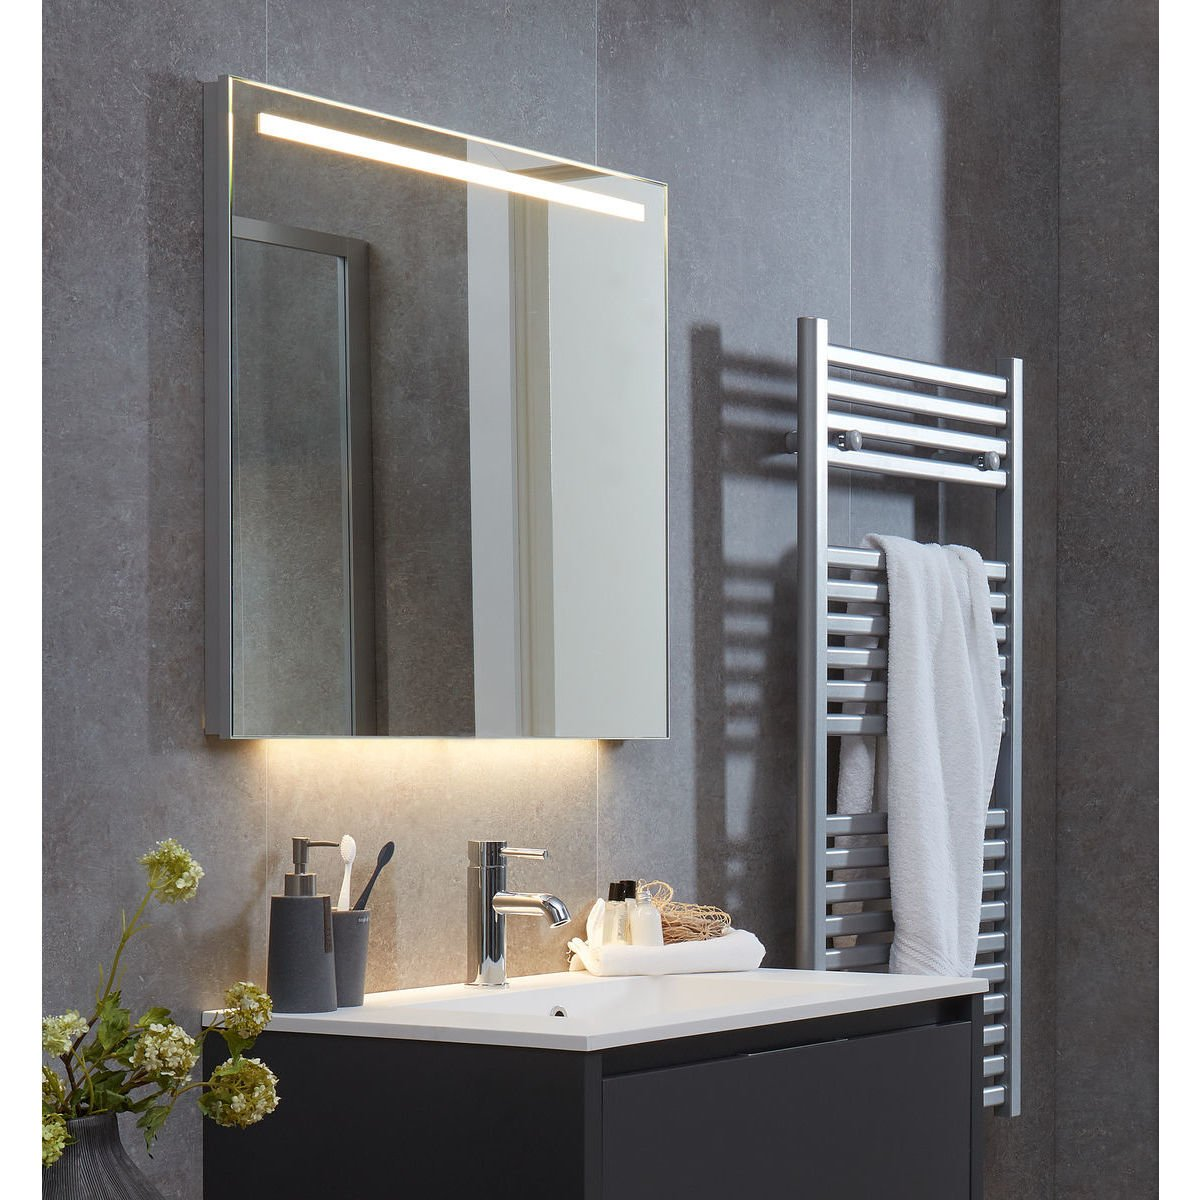 bruynzeel miroir panneau 120x60cm avec clairage led horizontal aluminium 232108. Black Bedroom Furniture Sets. Home Design Ideas